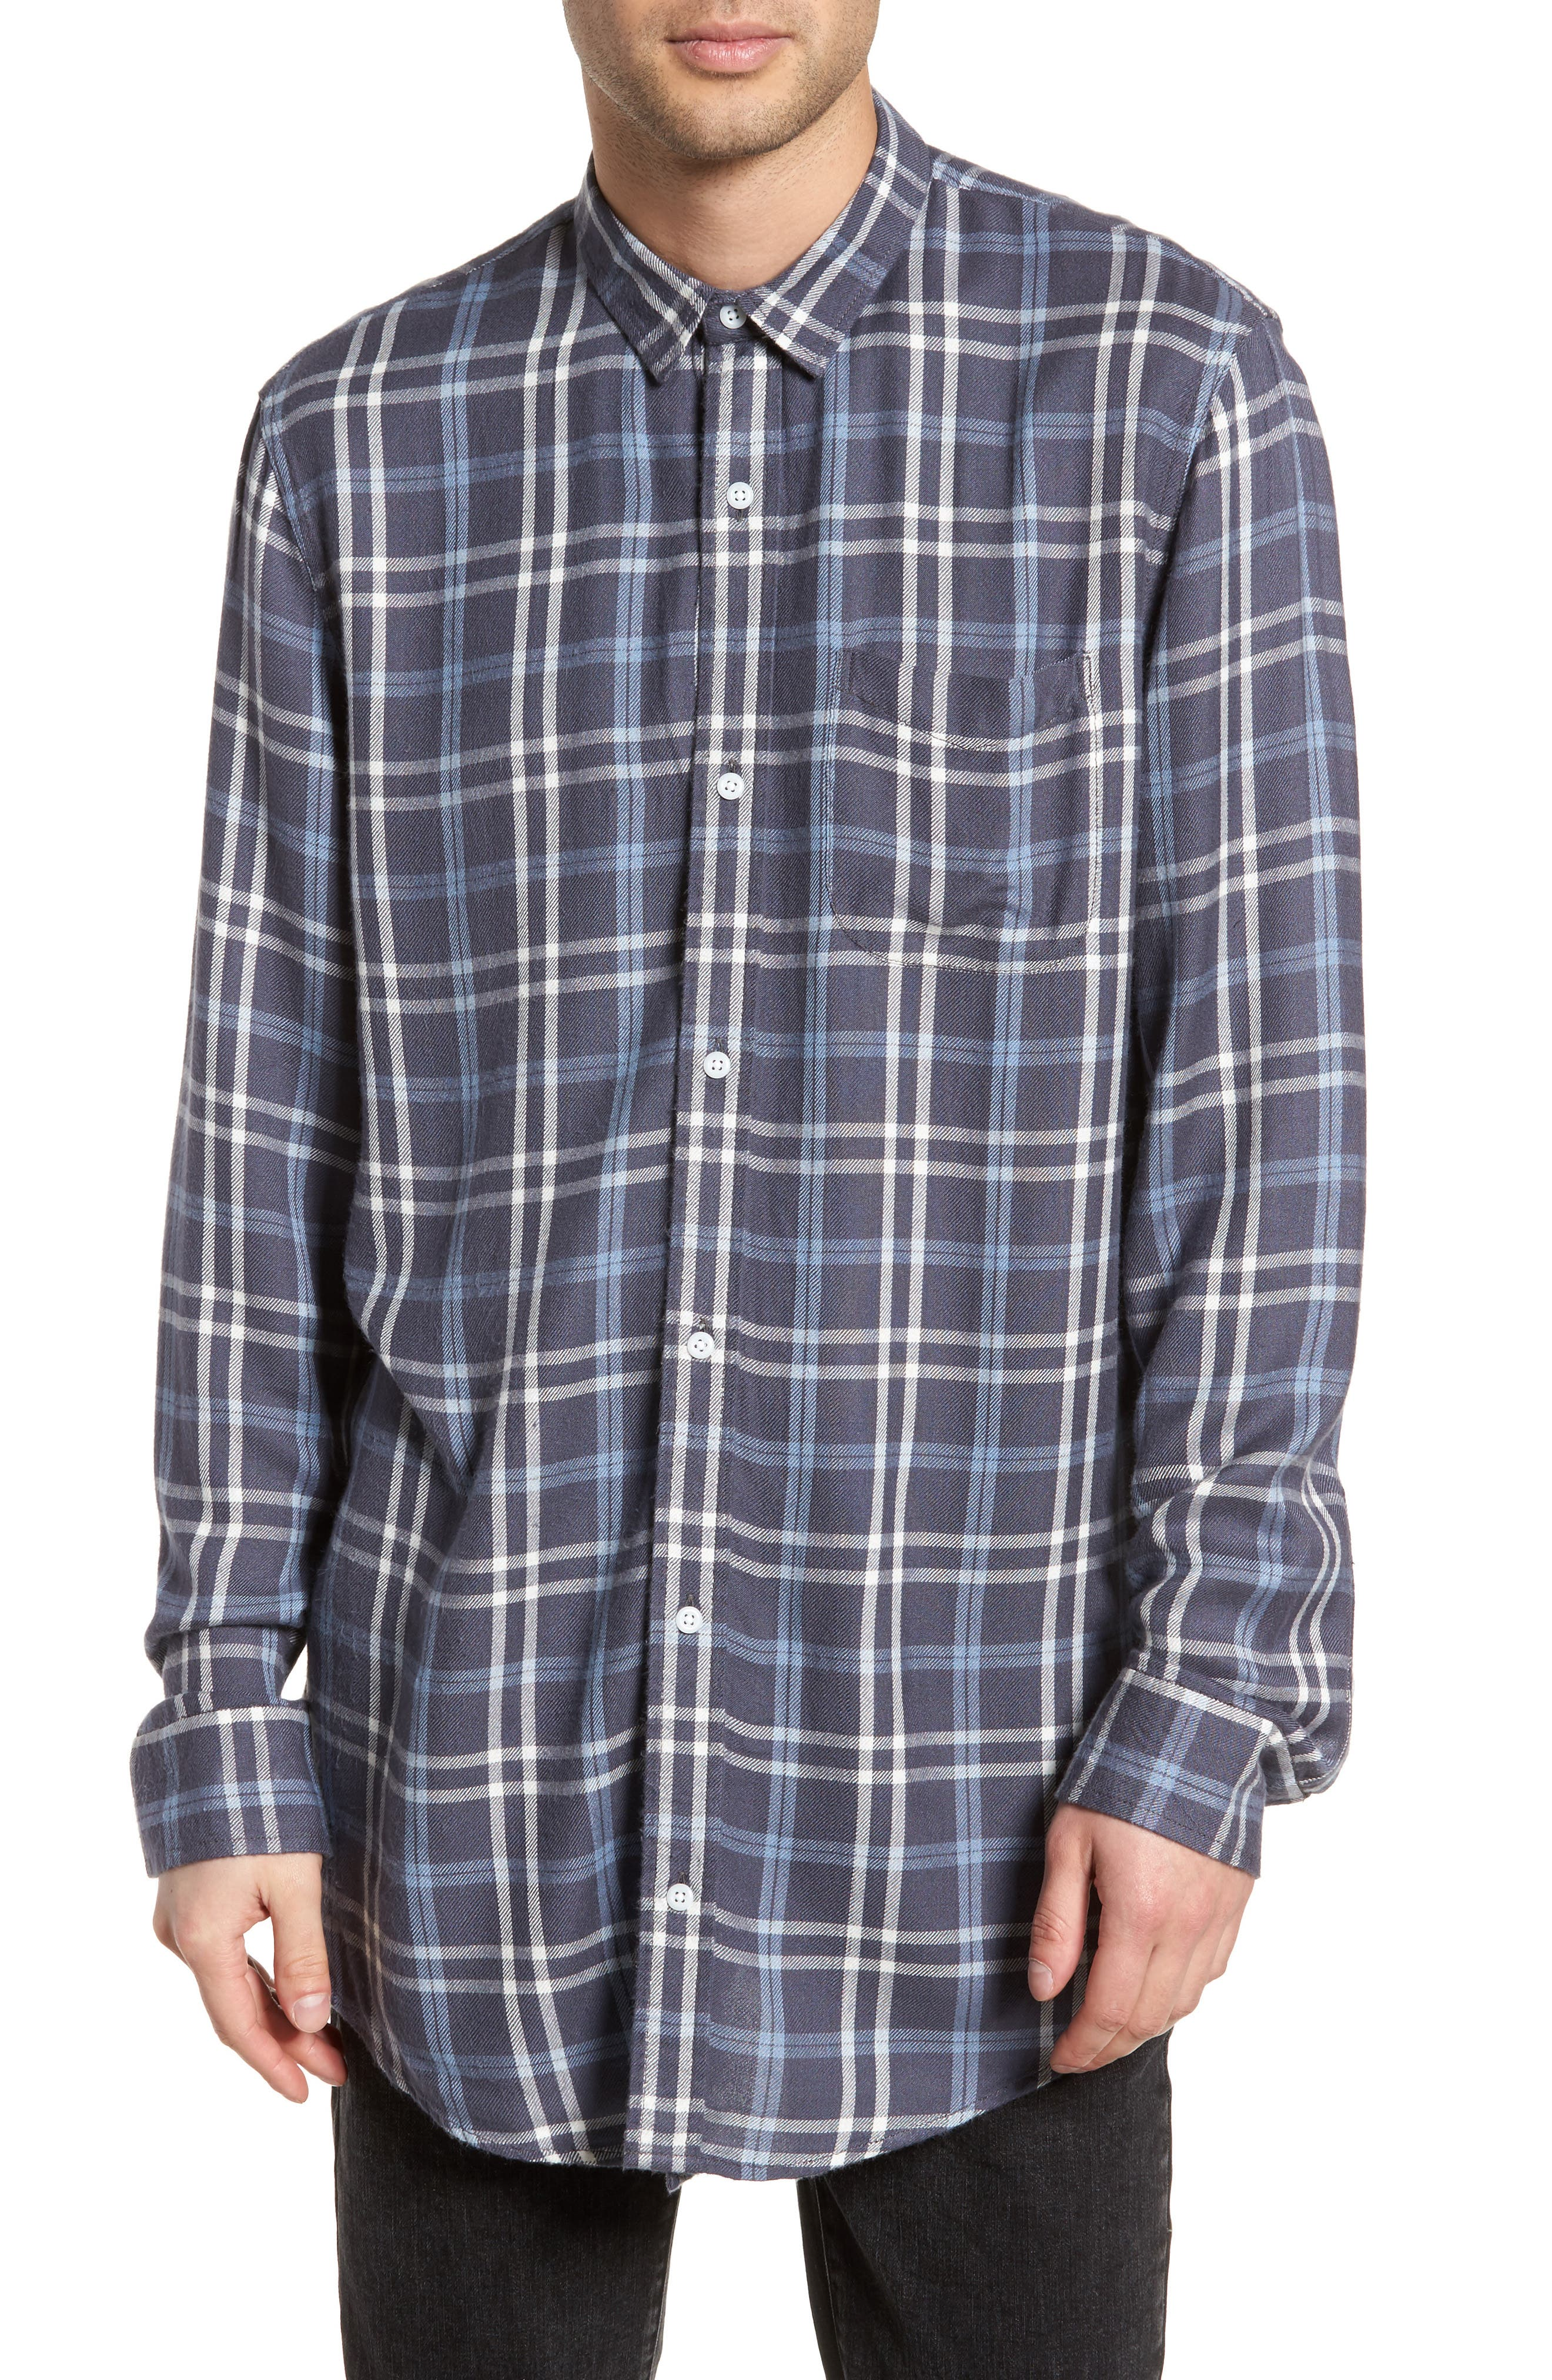 Yarn Dyed Plaid Shirt,                         Main,                         color, Blue Grisaille Plaid